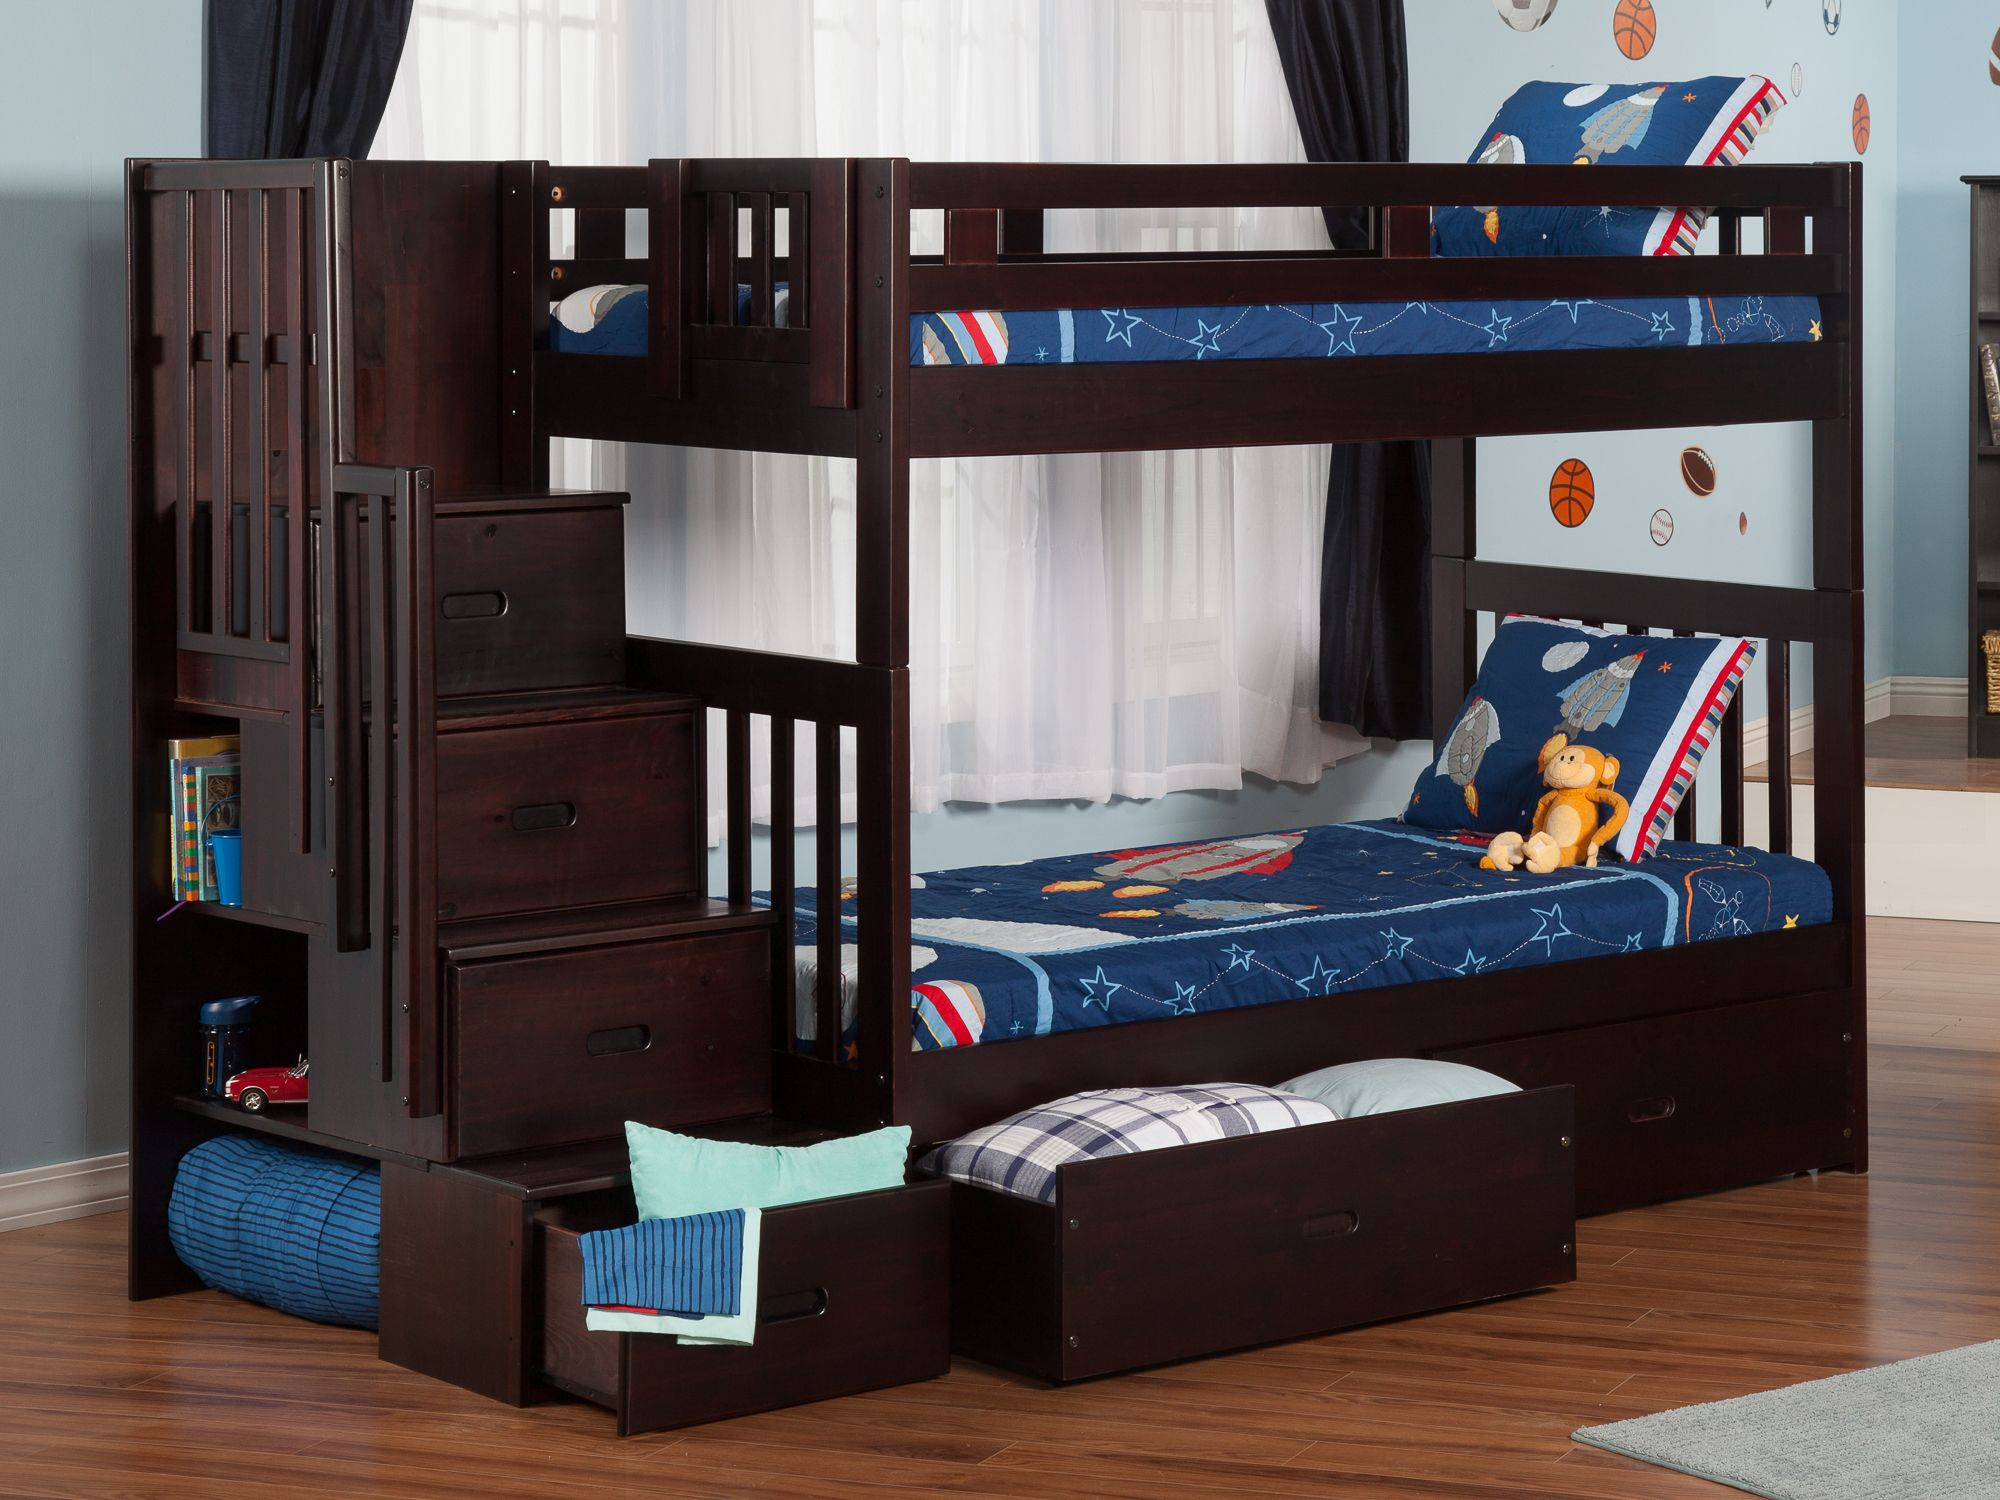 Cascade Staircase Storage Bunk Bed Bunk Beds With Storage Bunk